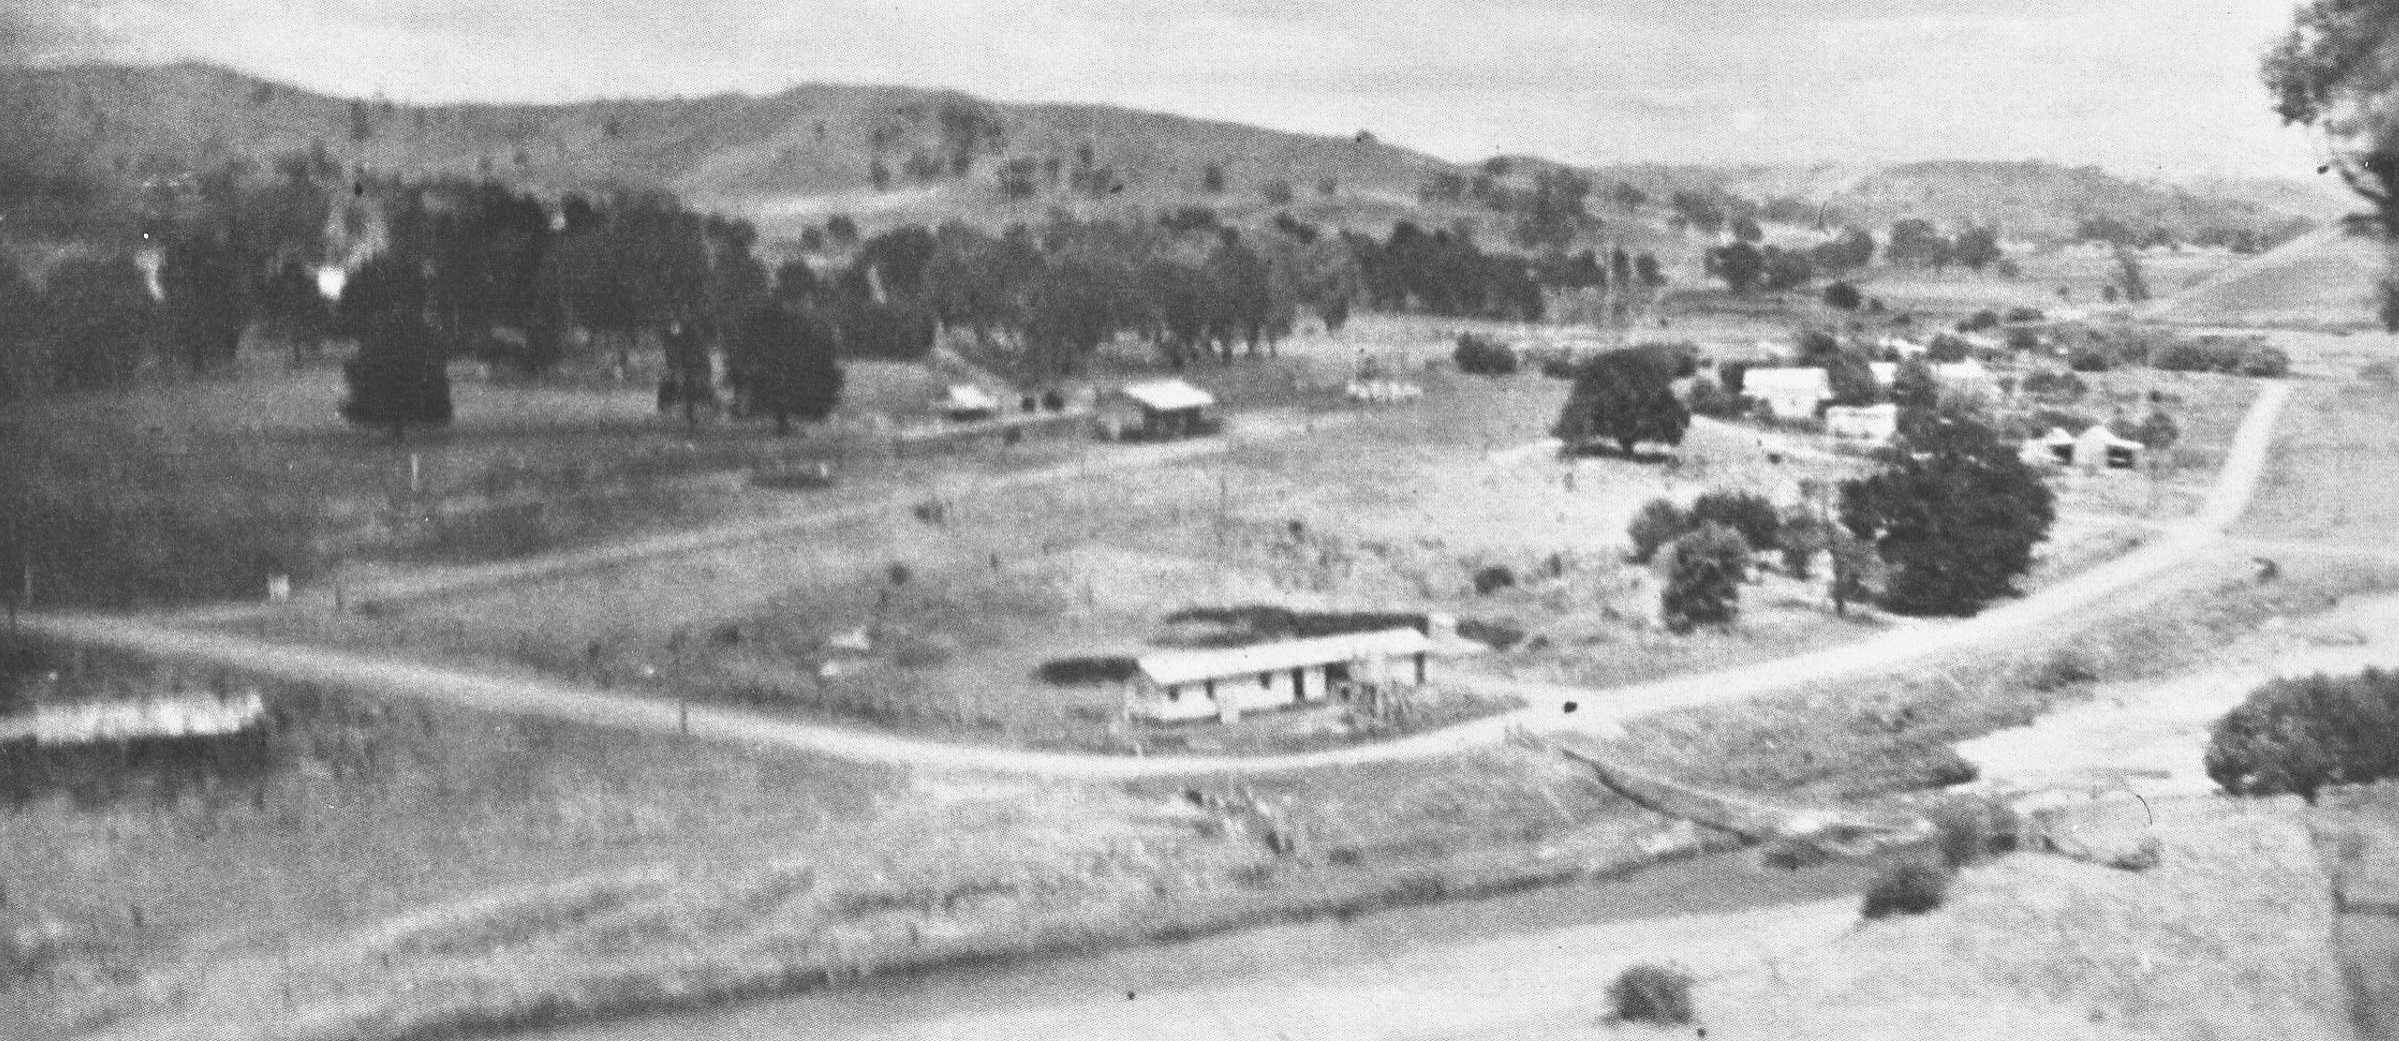 Construction campin foreground railway station goods shed butter fact. swing bridge some houses already moved 1955